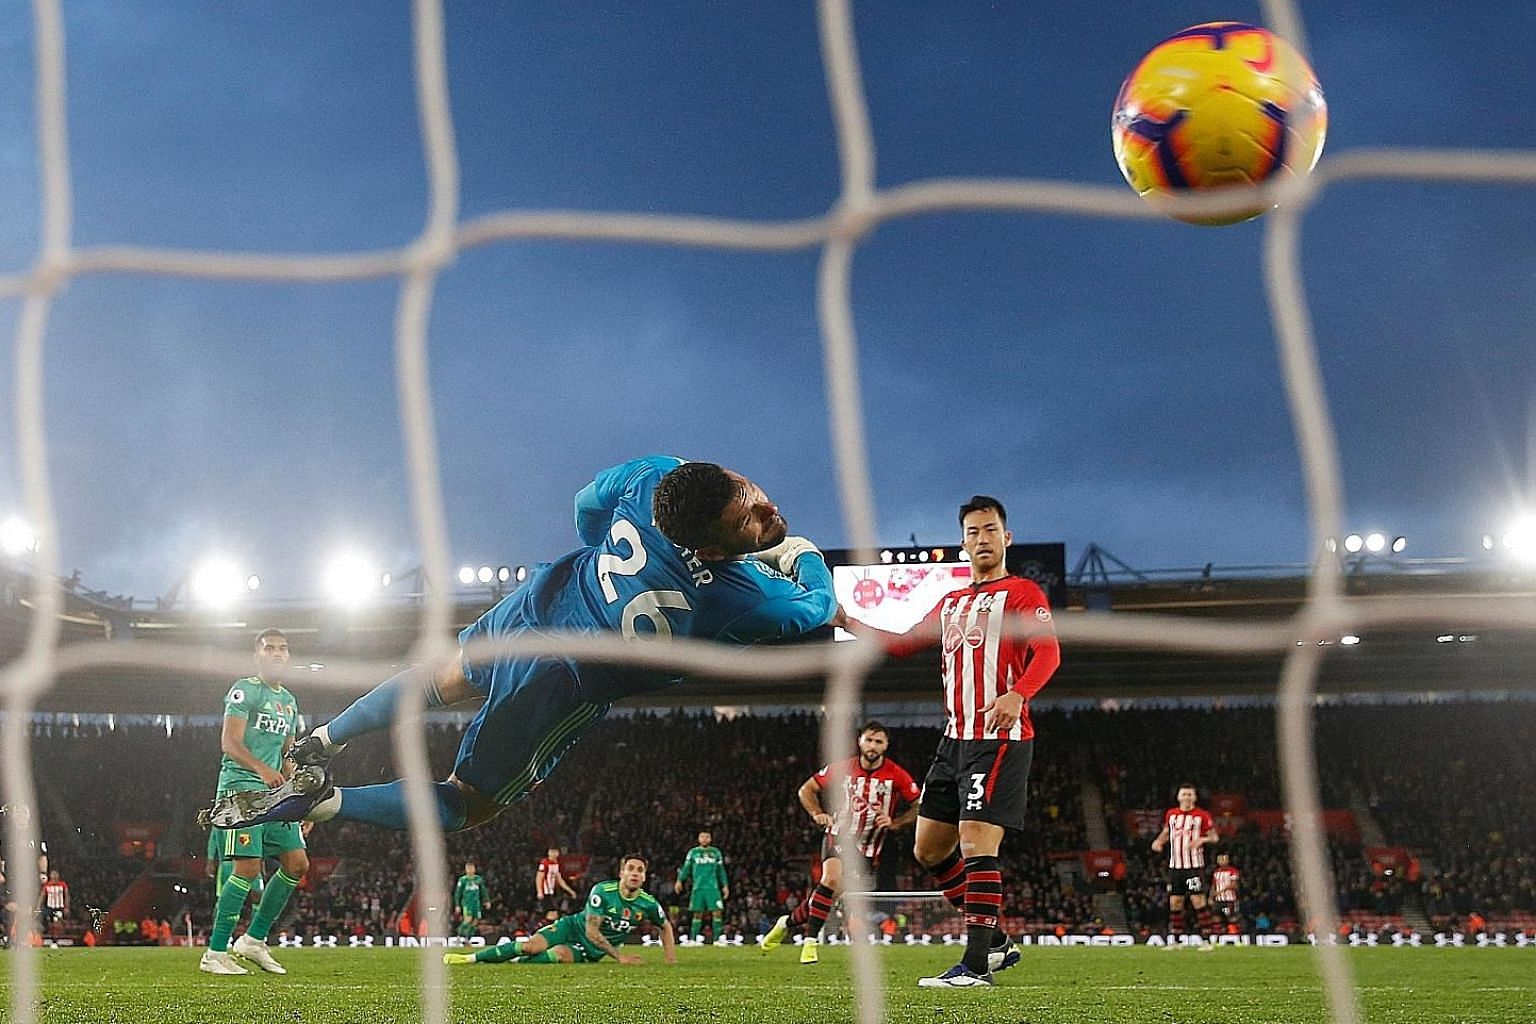 Southampton's Charlie Austin scoring a goal that was disallowed, as it went in off teammate Maya Yoshida who was deemed offside.